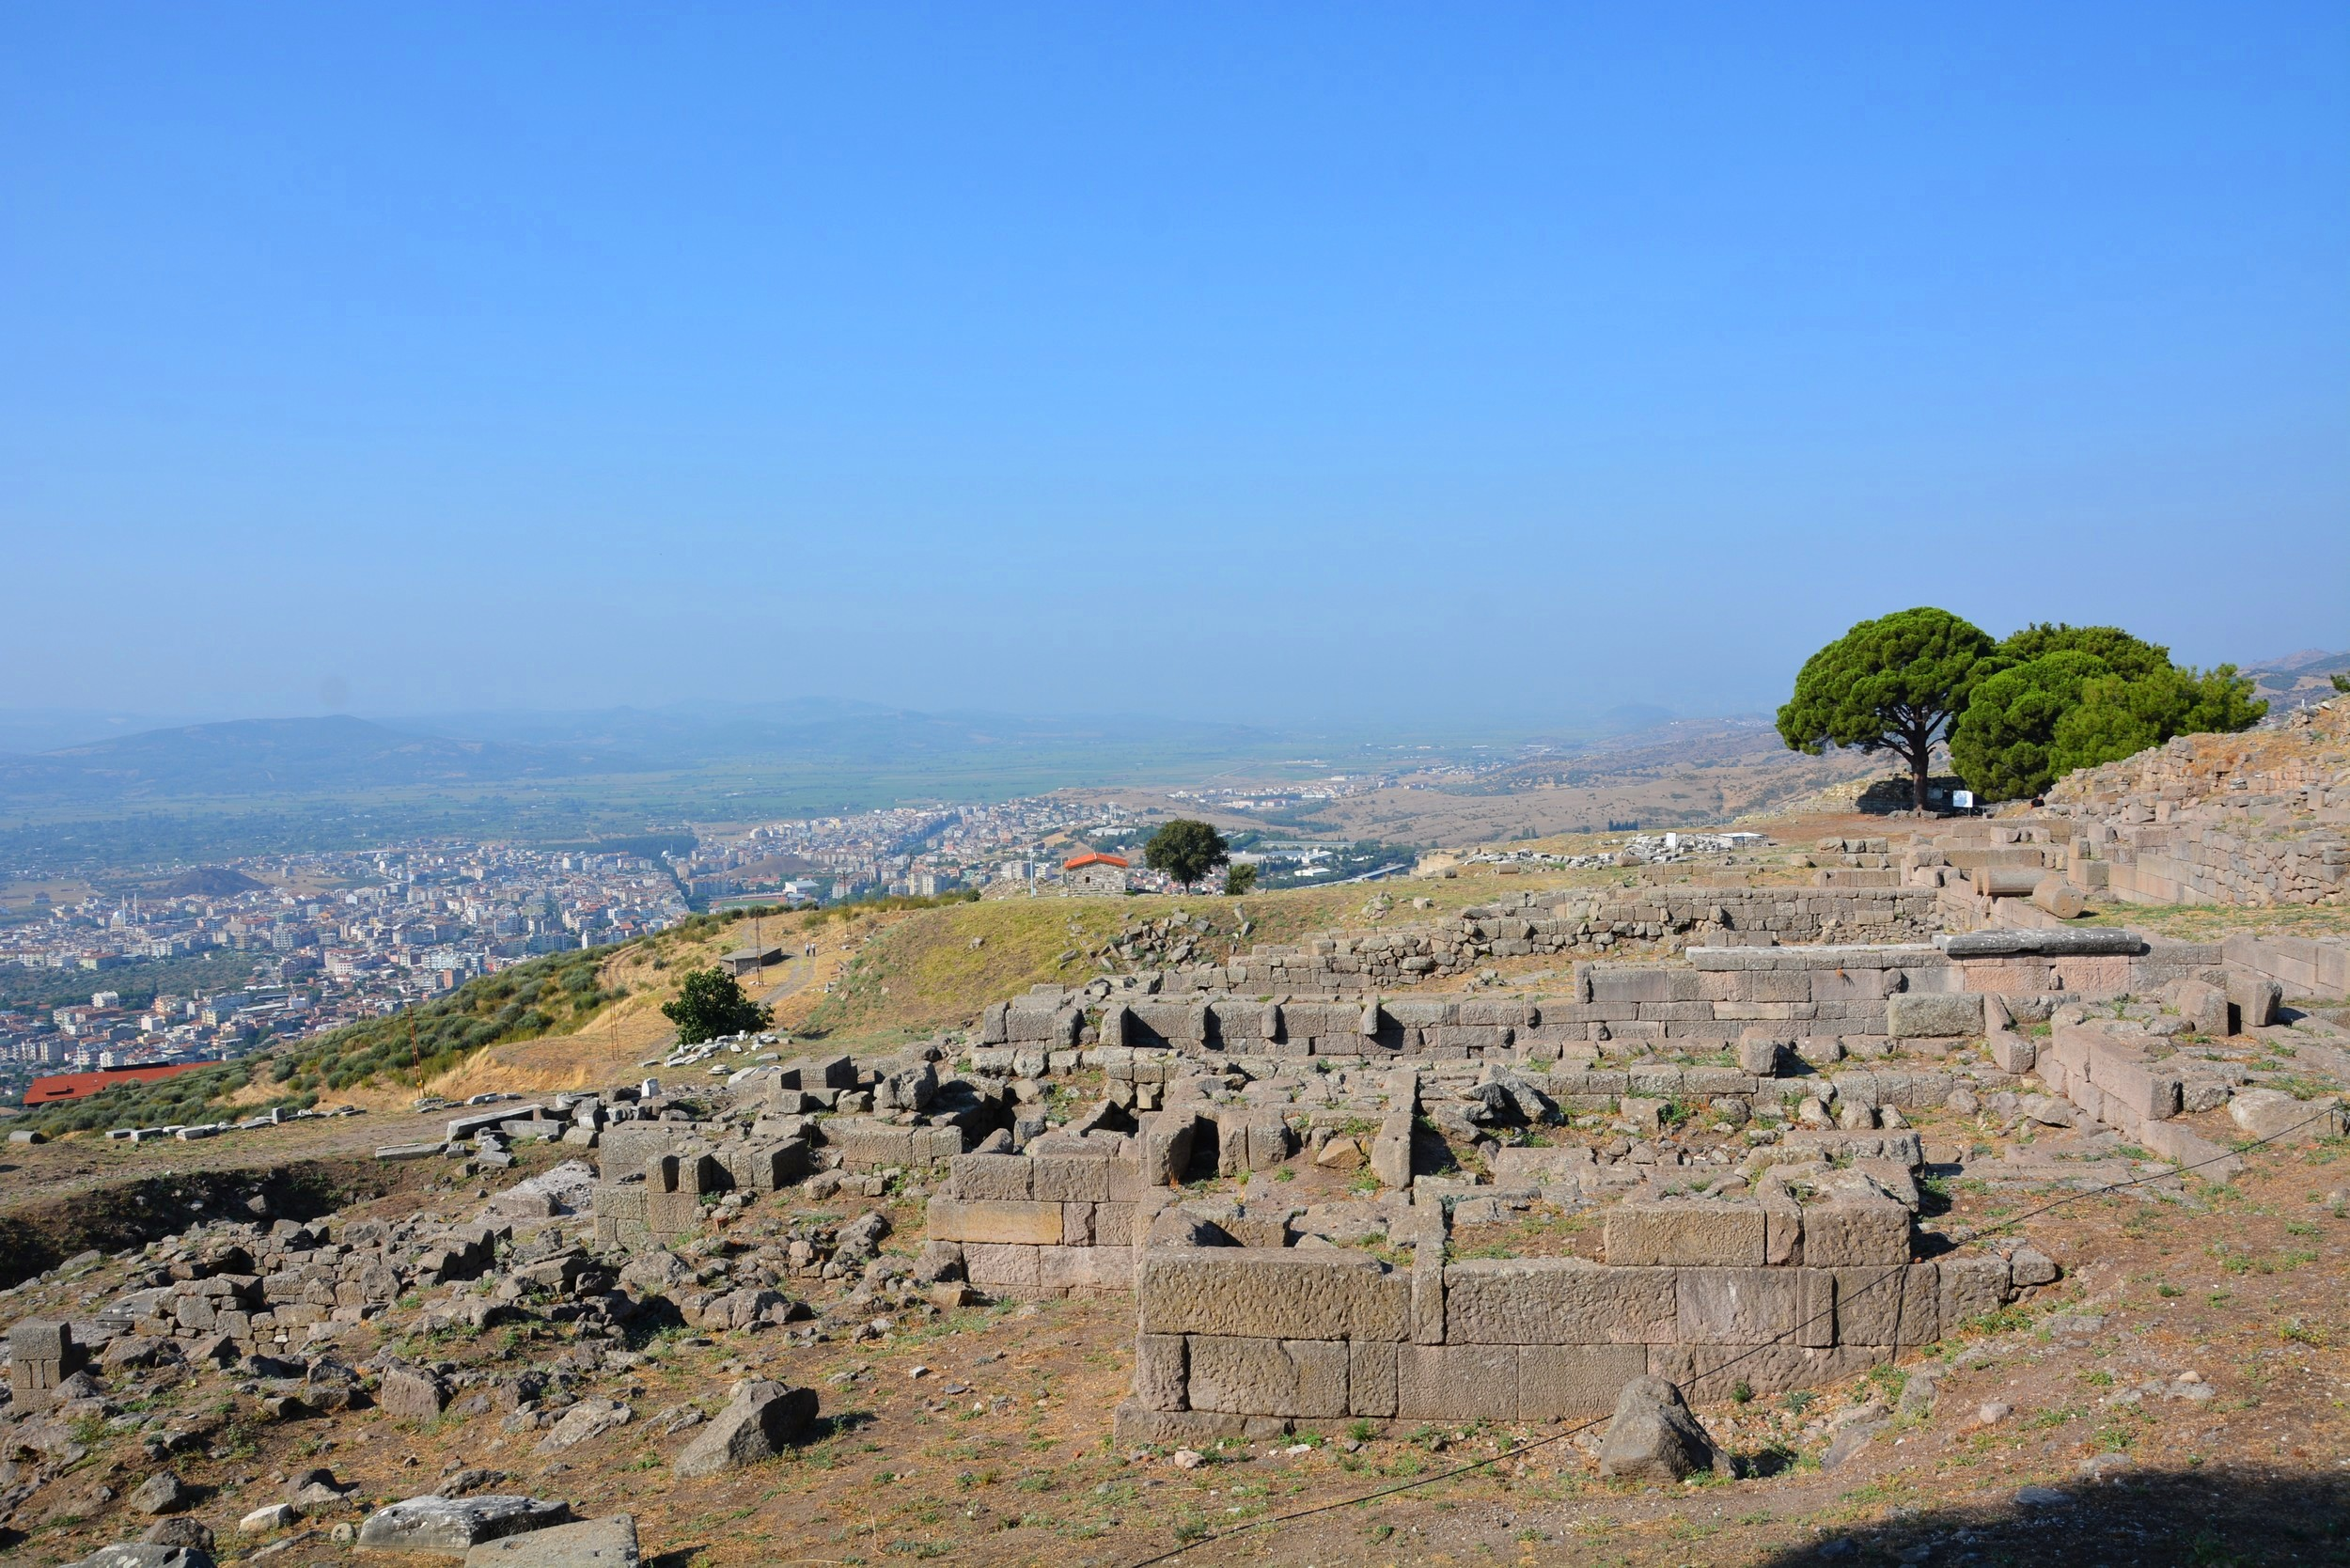 Pergamon, on the way to the Acropolis